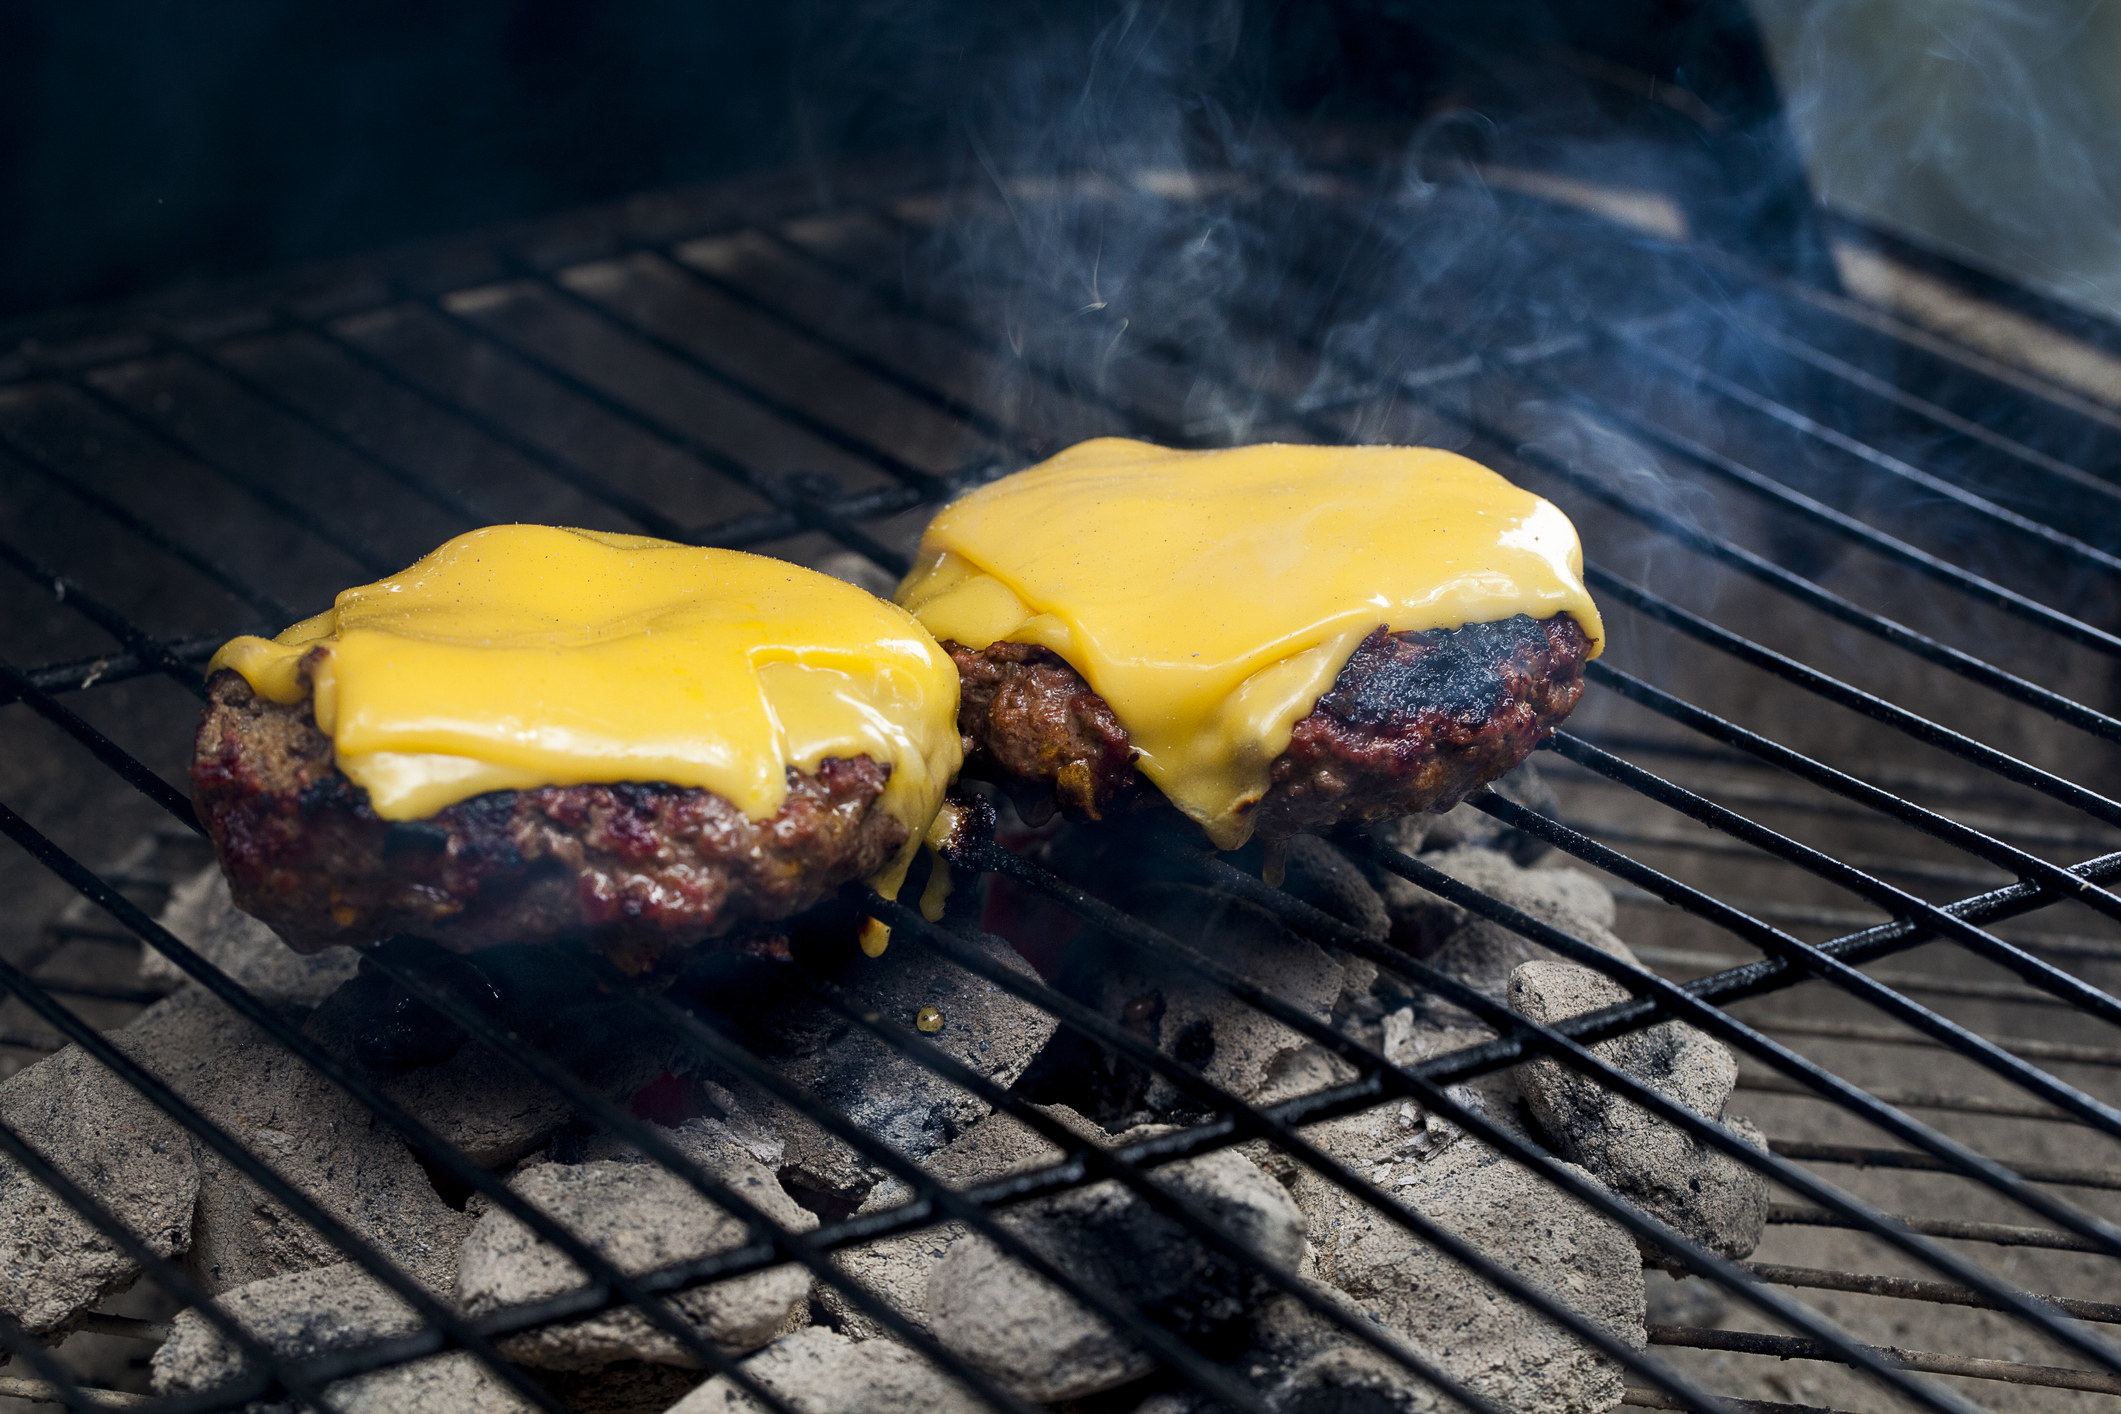 Burger patties topped with American cheese.